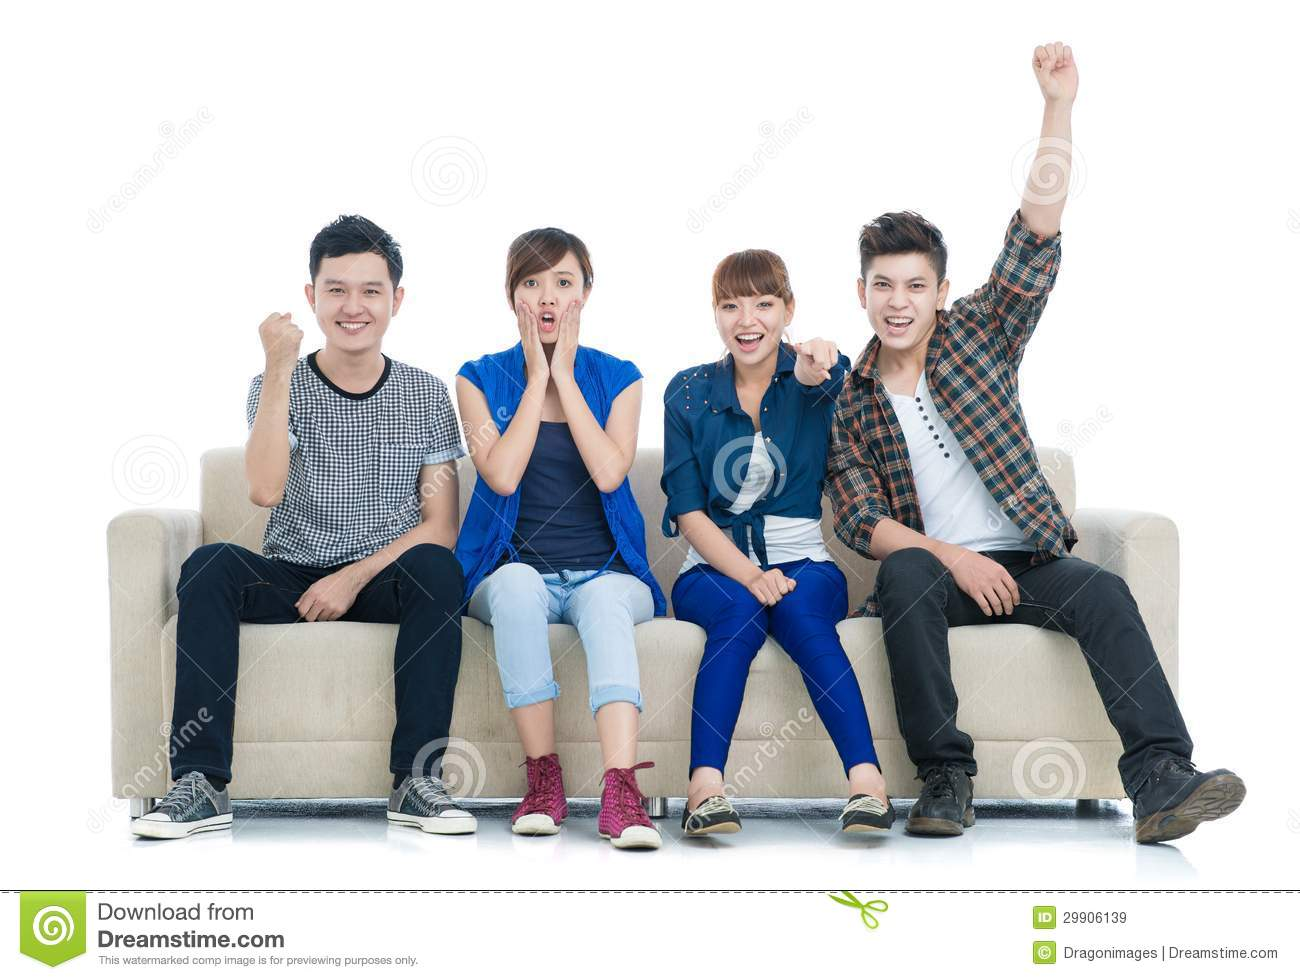 Sad Animation Wallpaper Excited Teens Royalty Free Stock Images Image 29906139